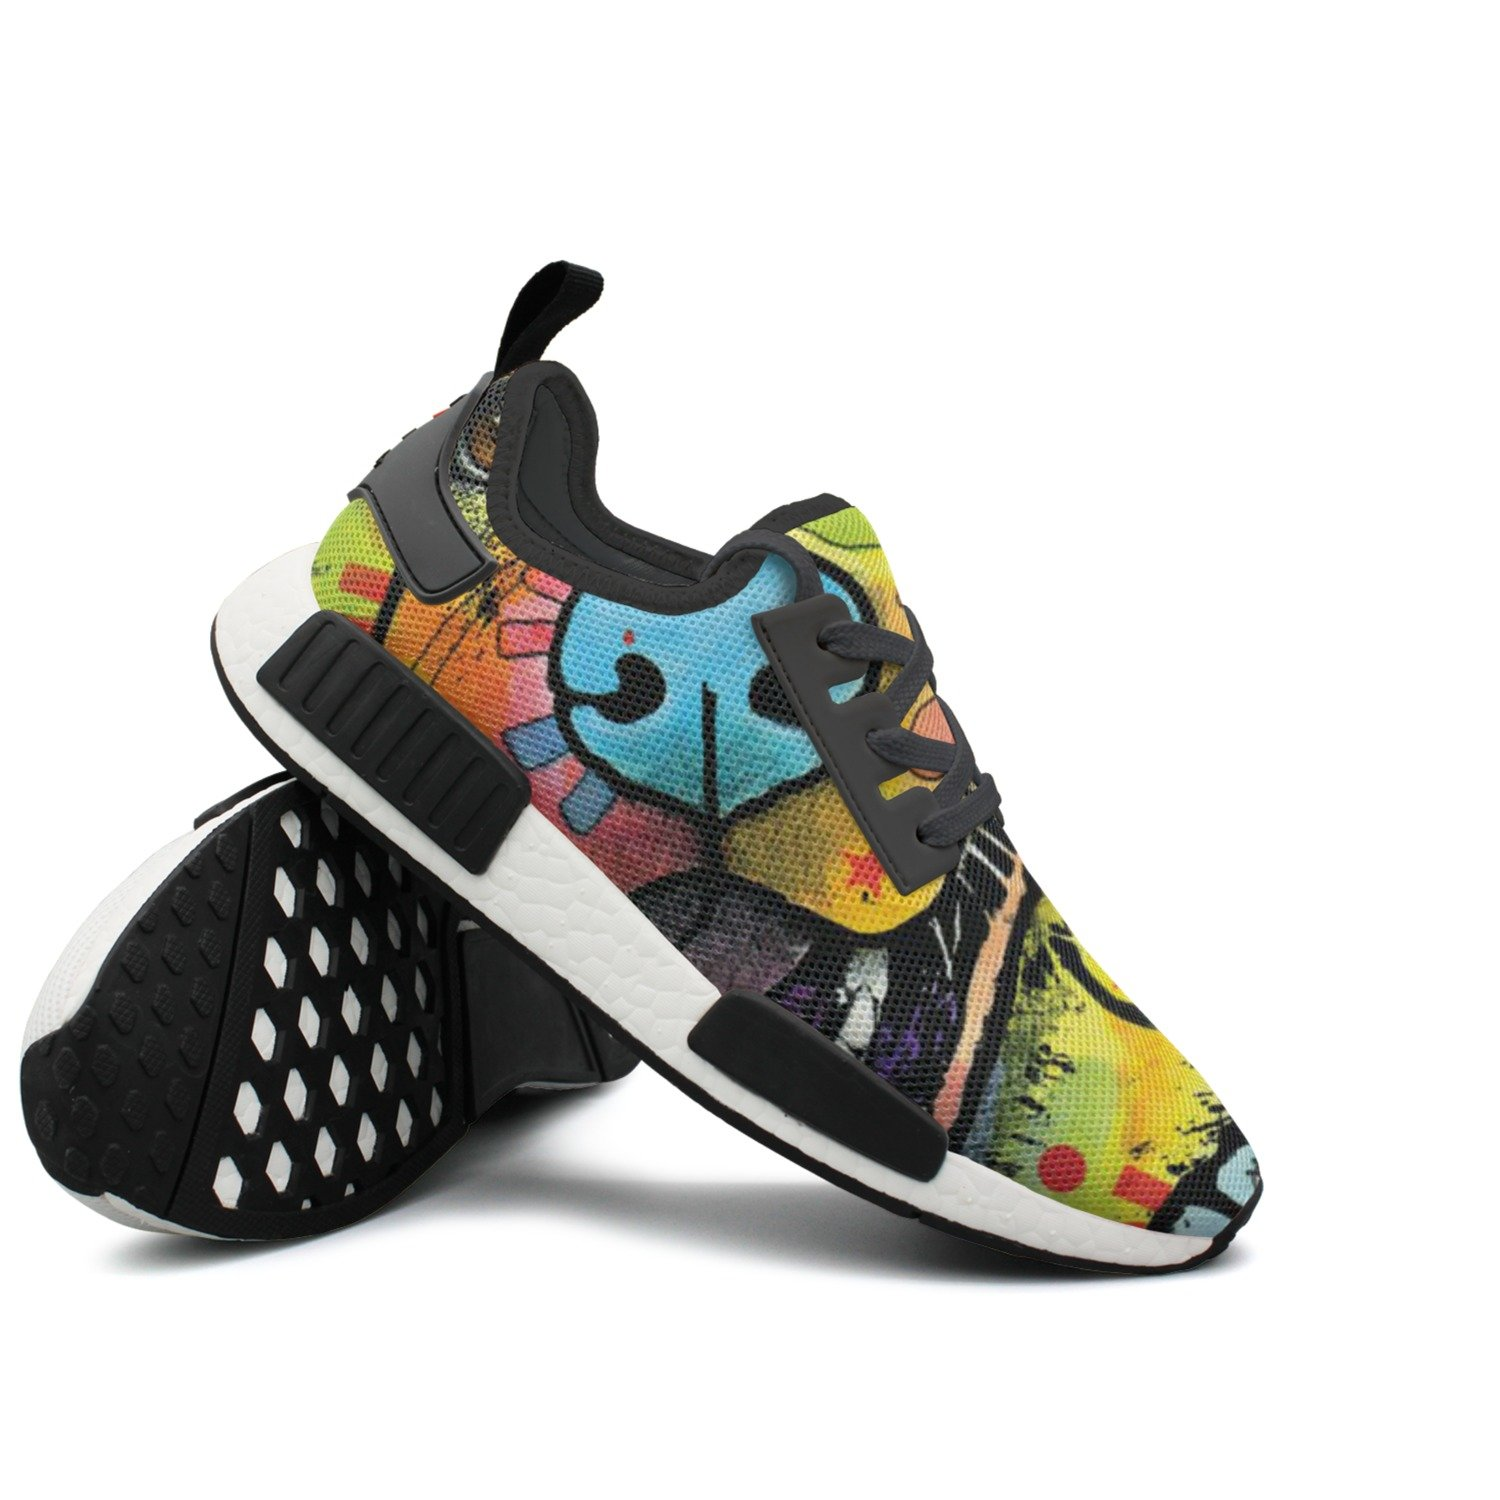 CVOIREWKLL Summer Up Cute Skull Cheese Hot Dog Wear-resistant Classic Stylish Print Sneaker Shoes